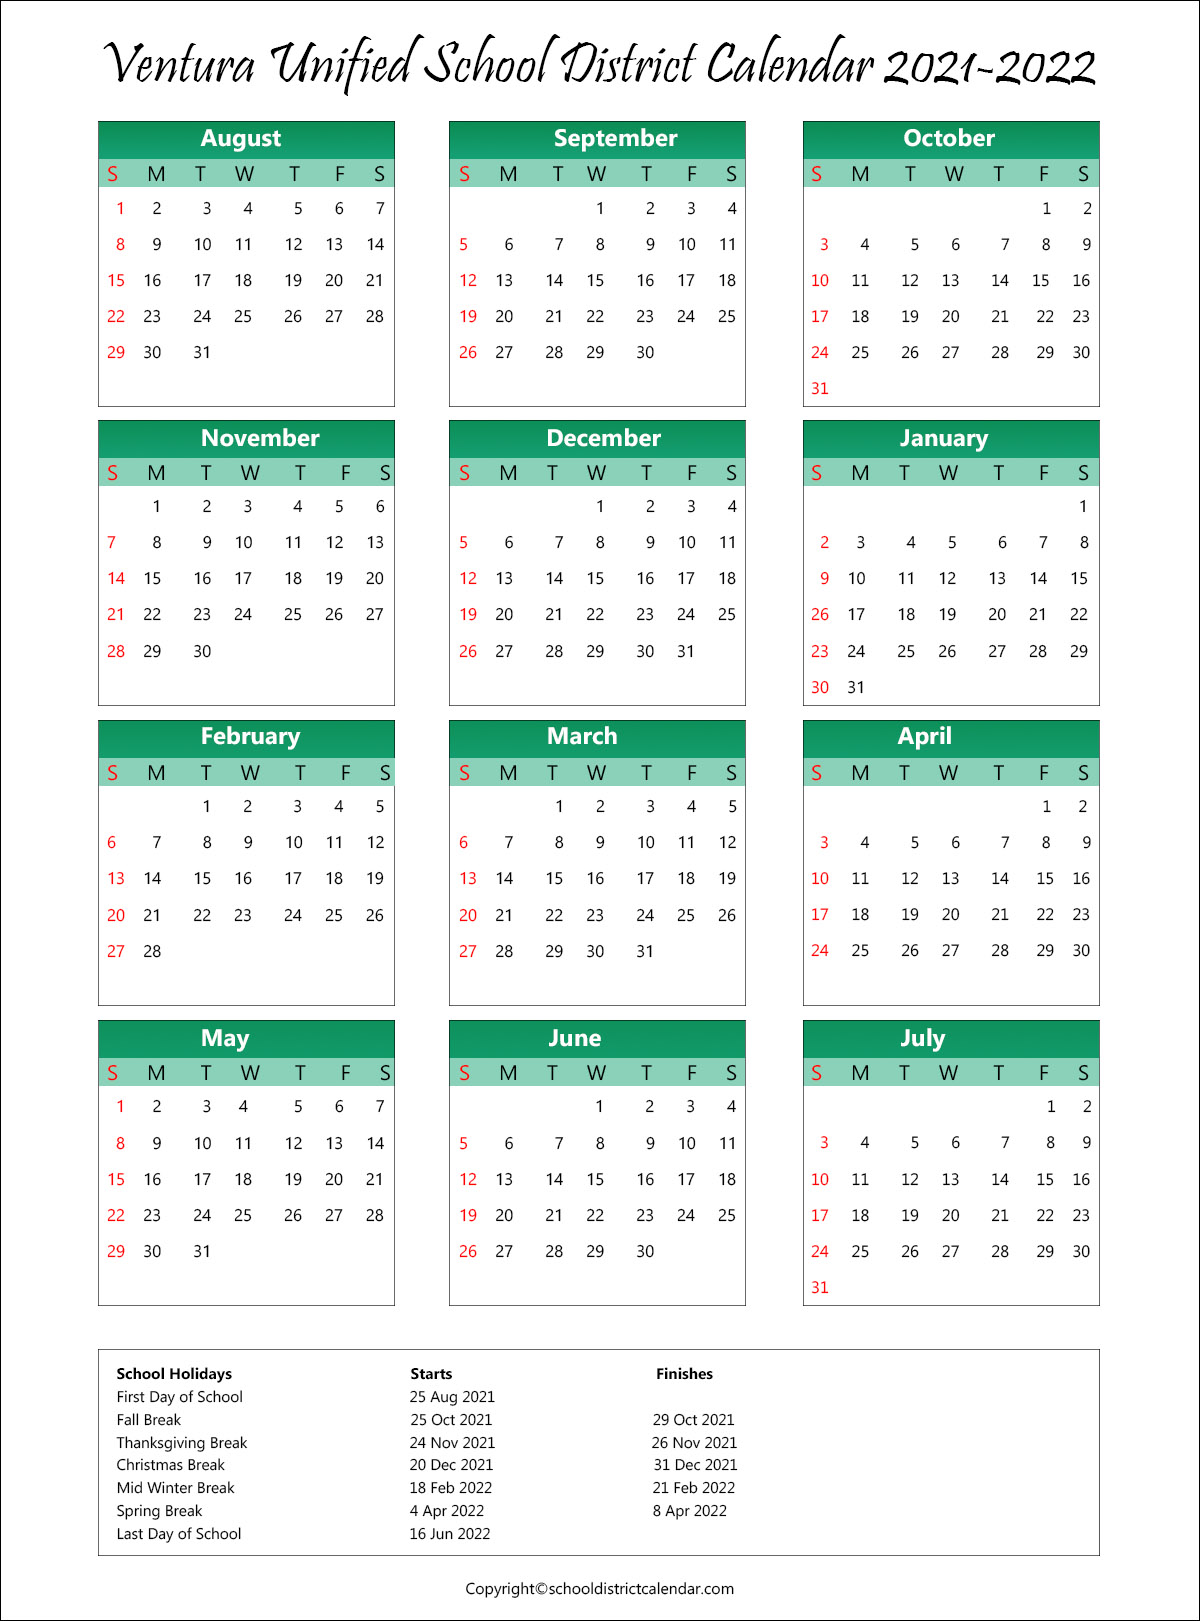 Ventura Unified School District, California Calendar Holidays 2021